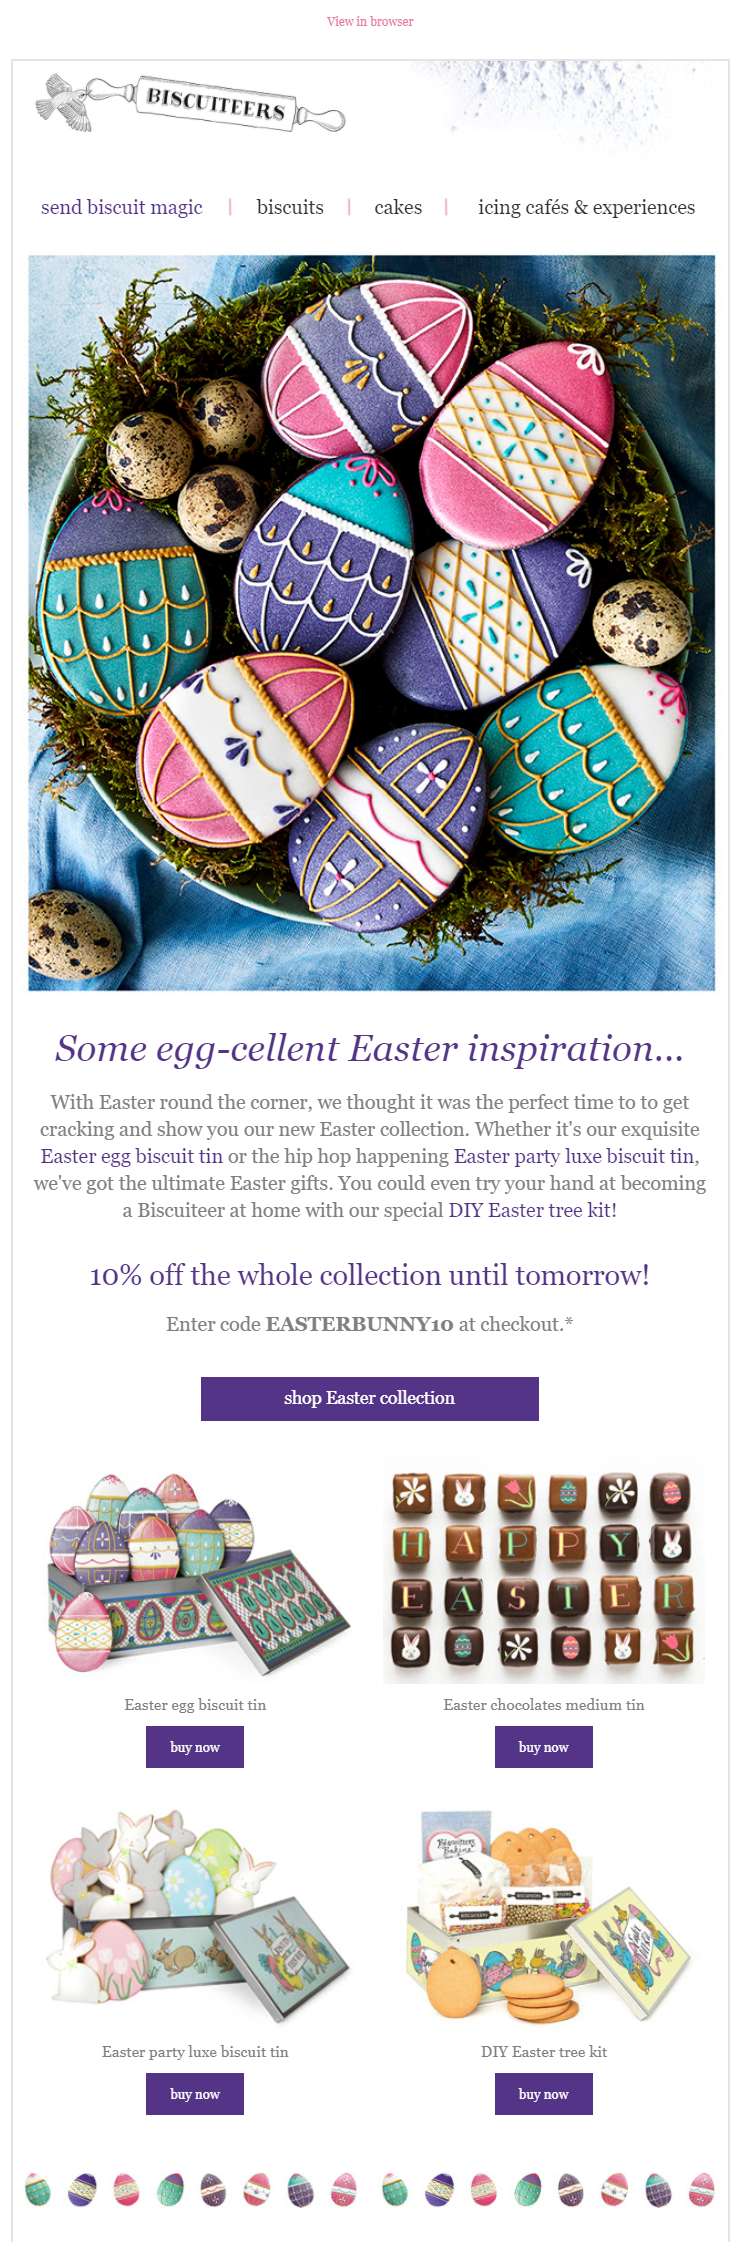 Easter email campaign by Biscuiteers